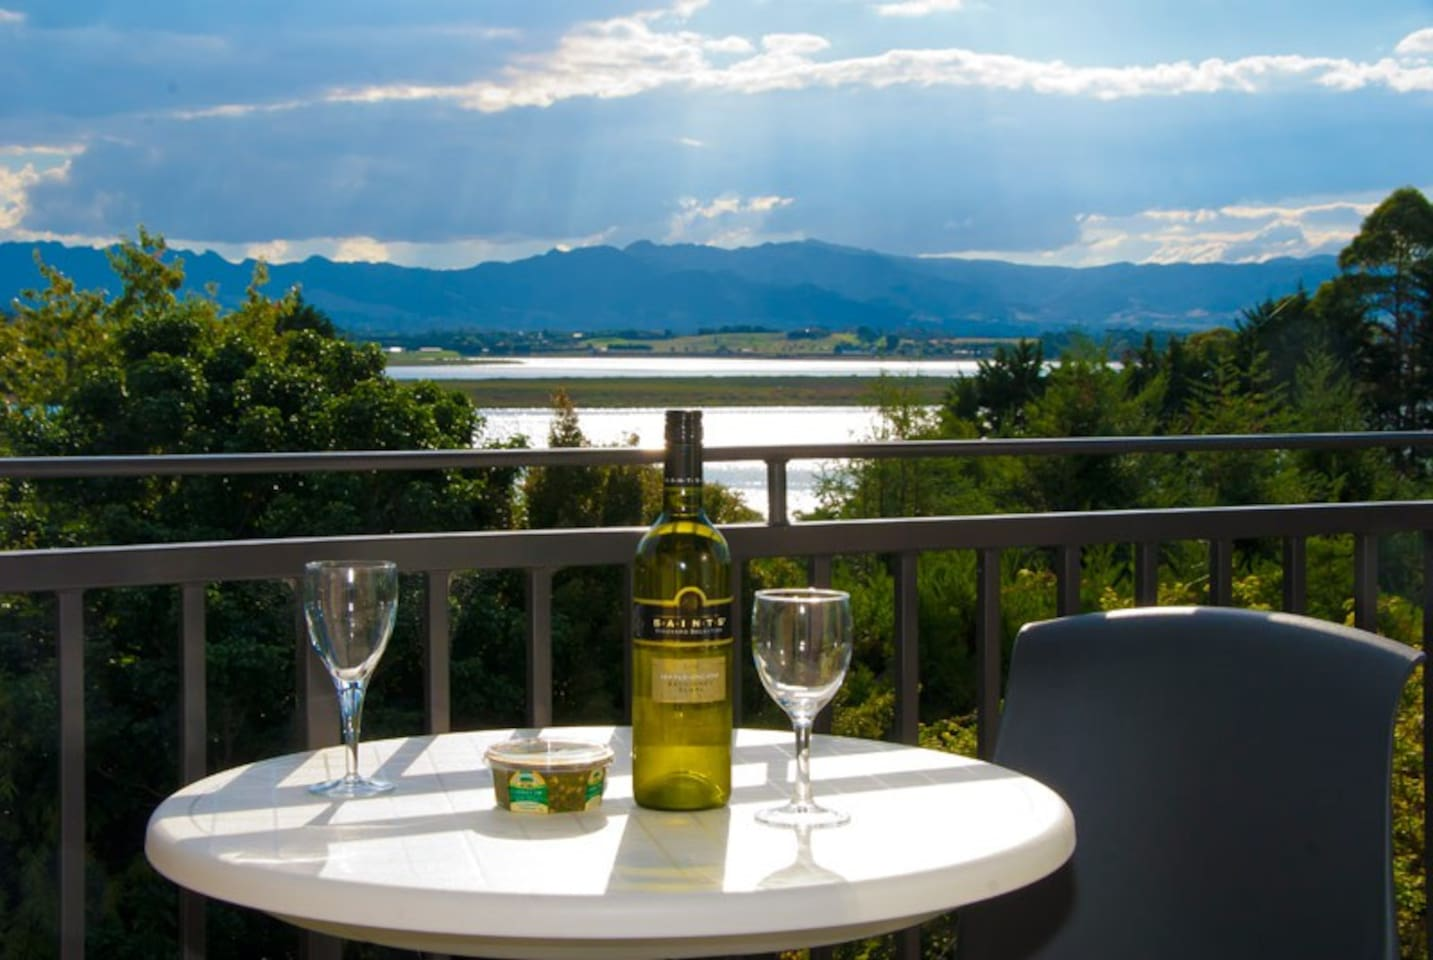 Relax and unwind on your balcony with a local wine and watch the sun go down.